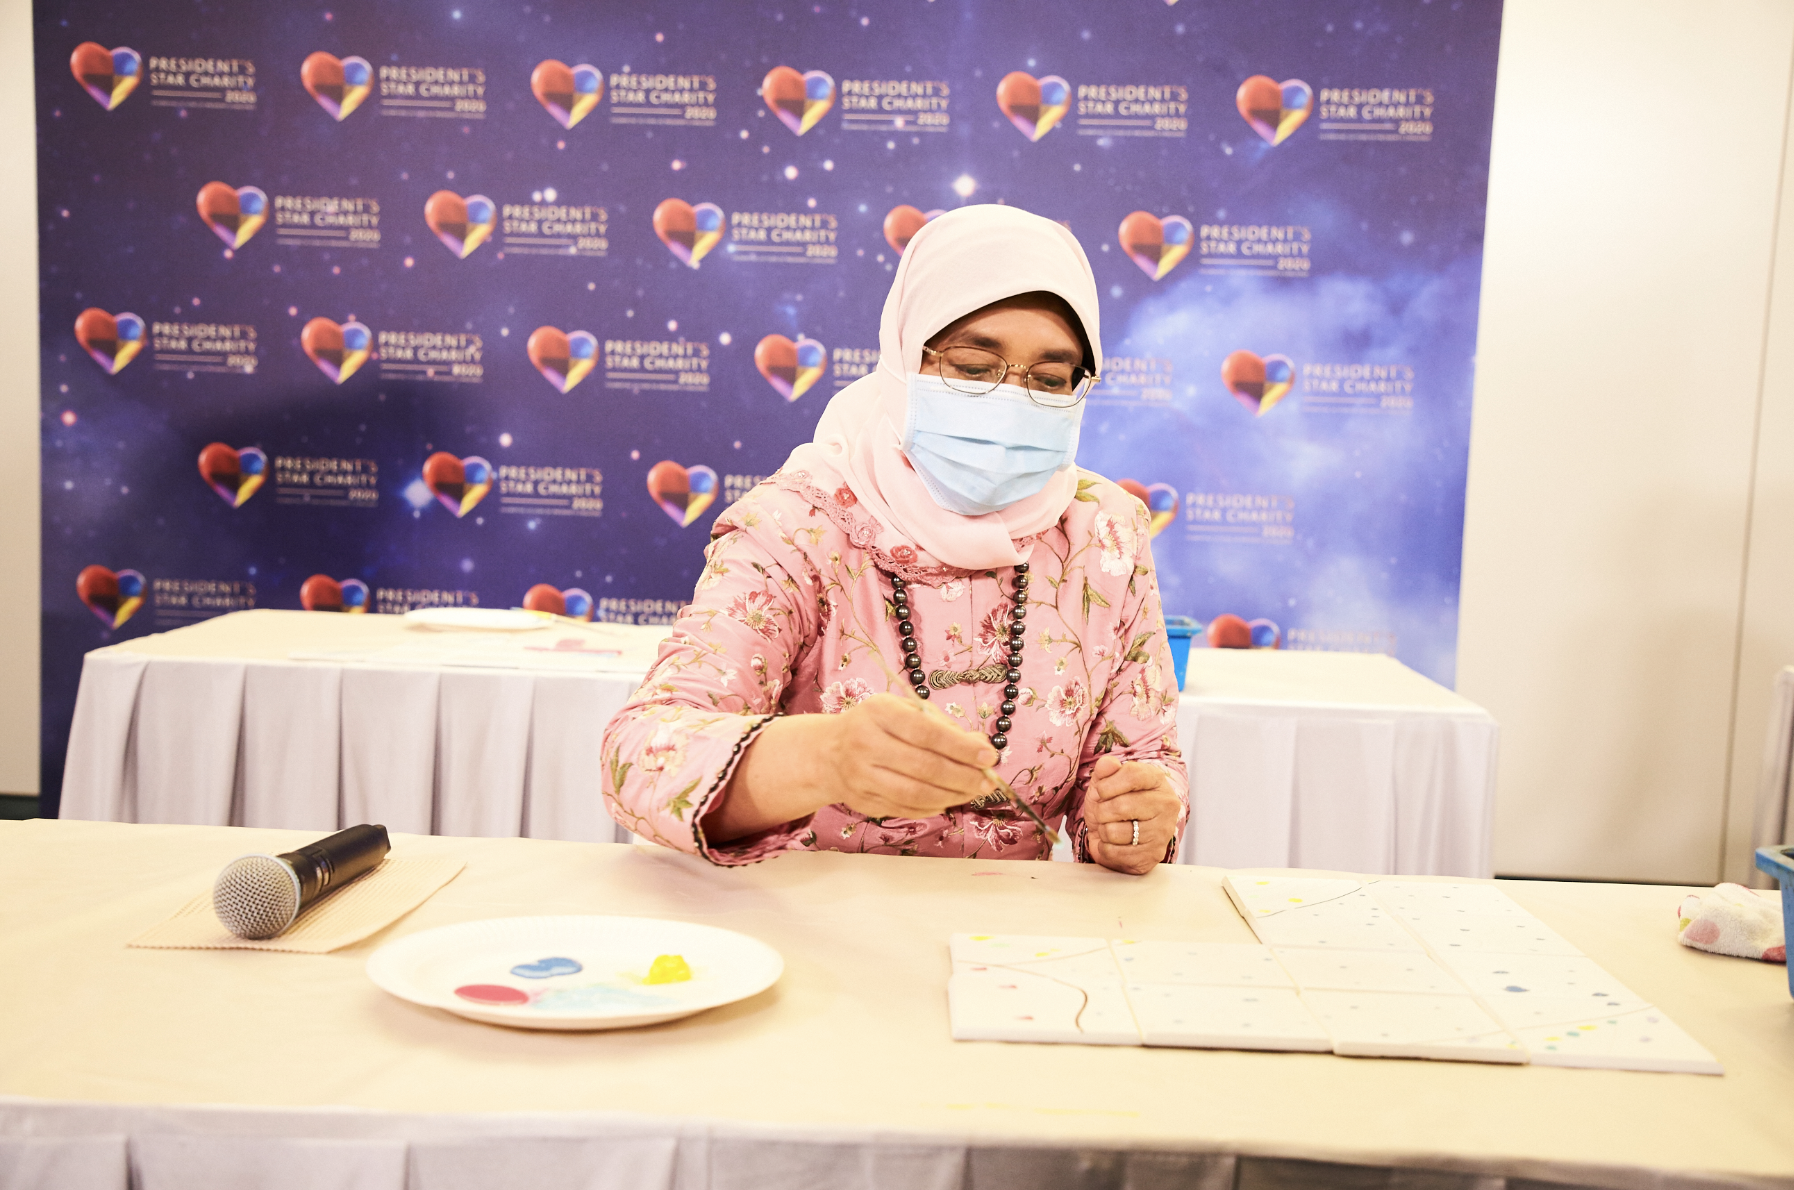 A highlight of PSC2020 was a tile-painting segment by President Halimah Yacob. Photo courtesy: Mediacorp